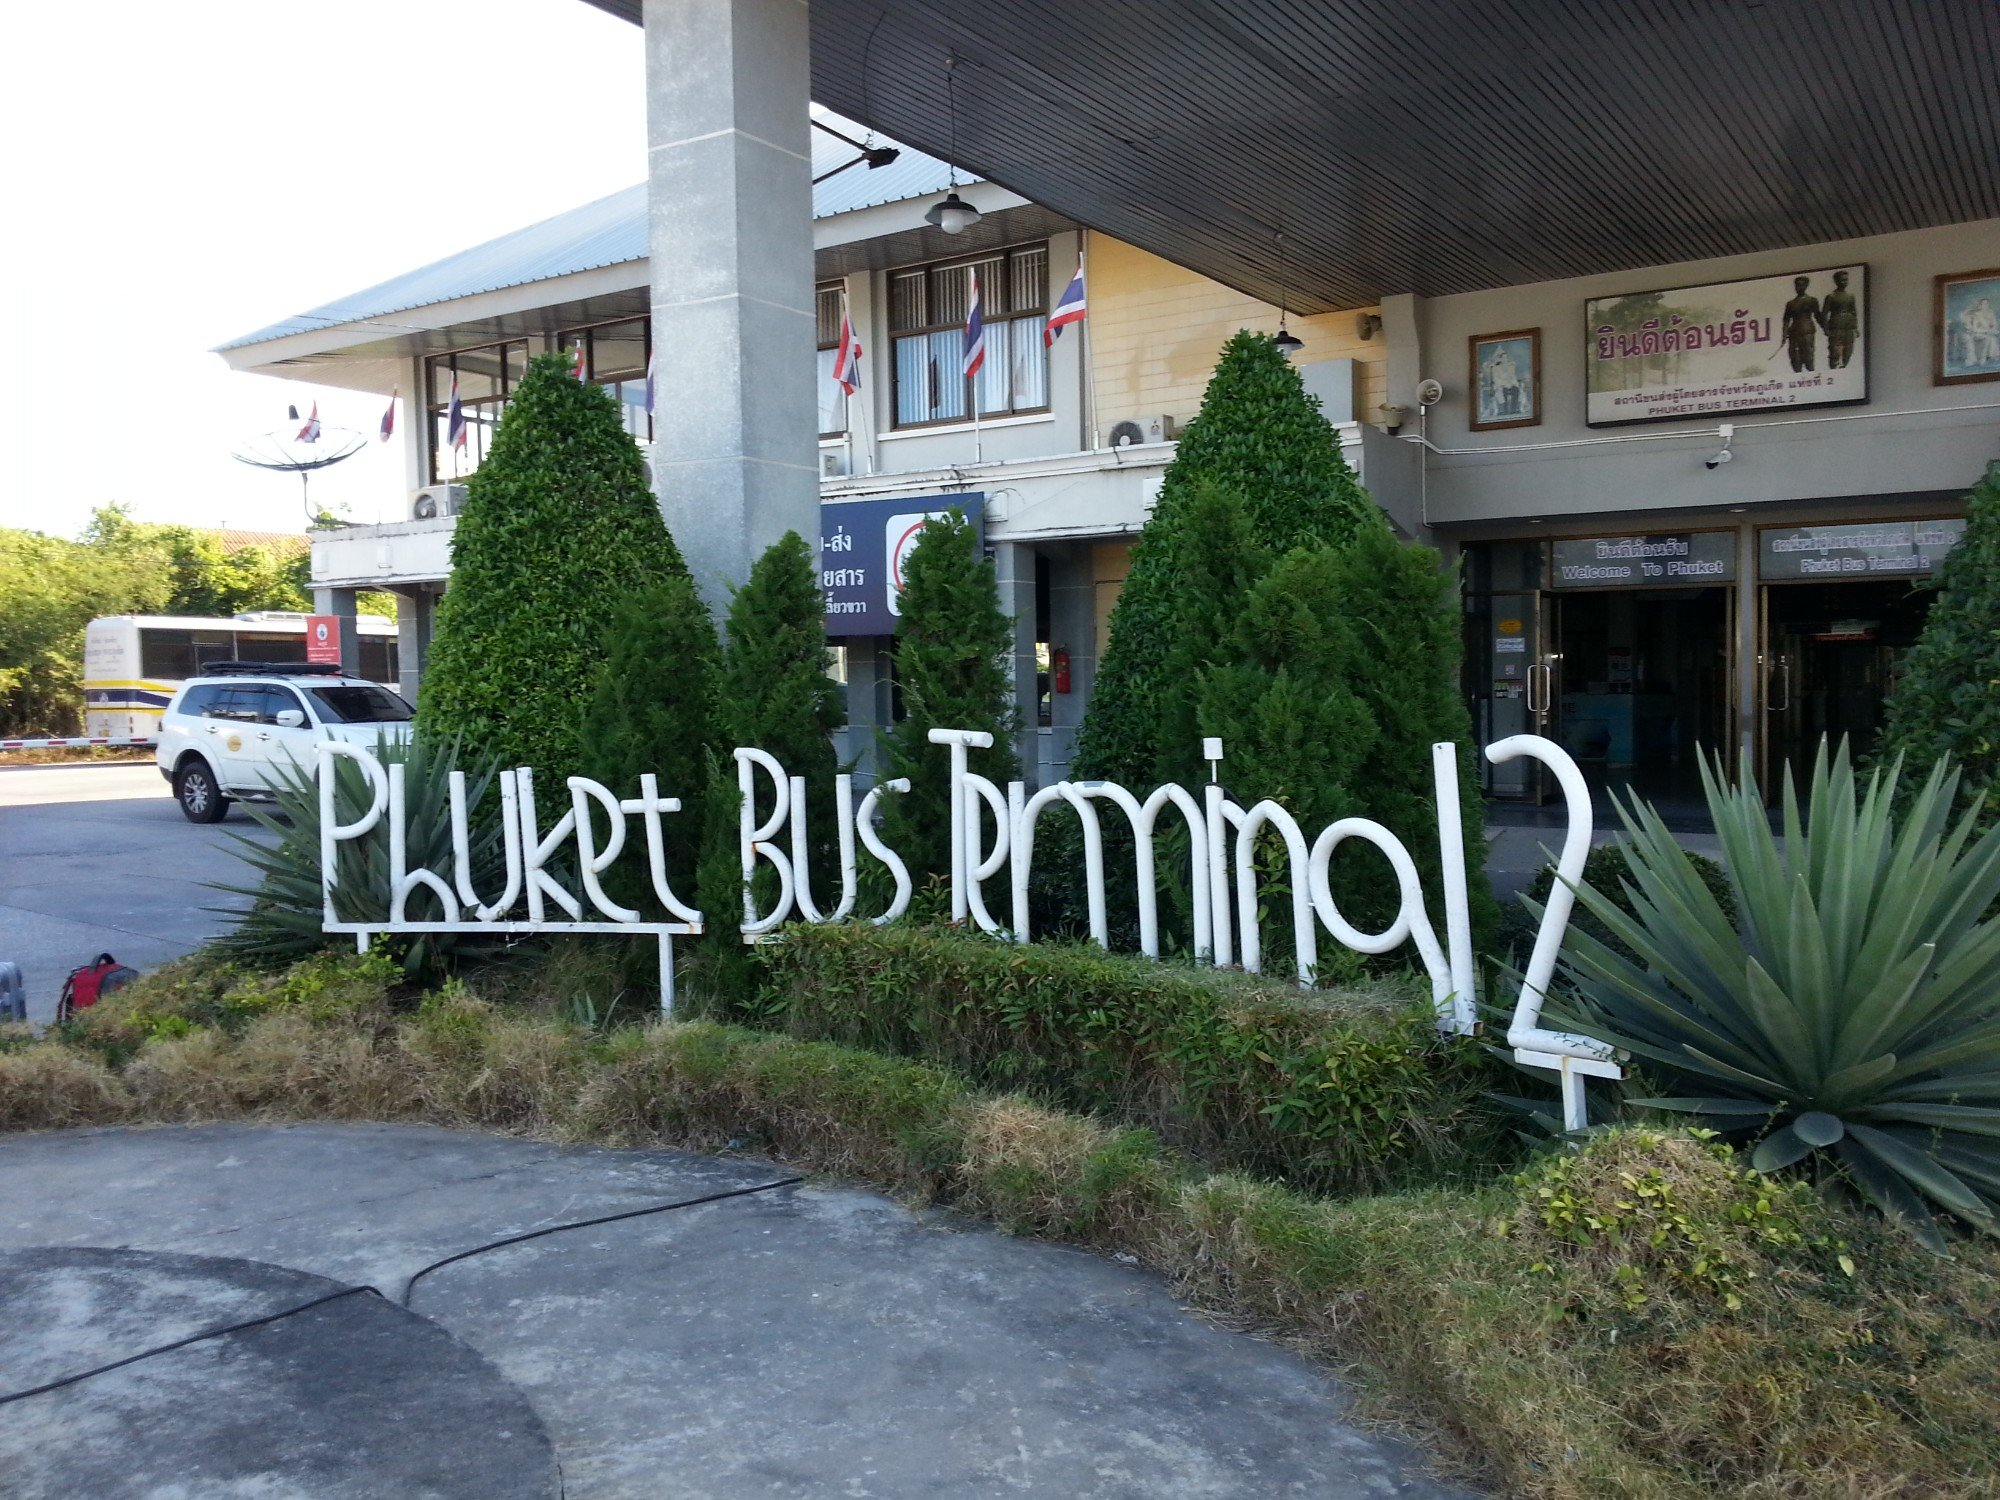 Entrance to Phuket Bus Terminal 2